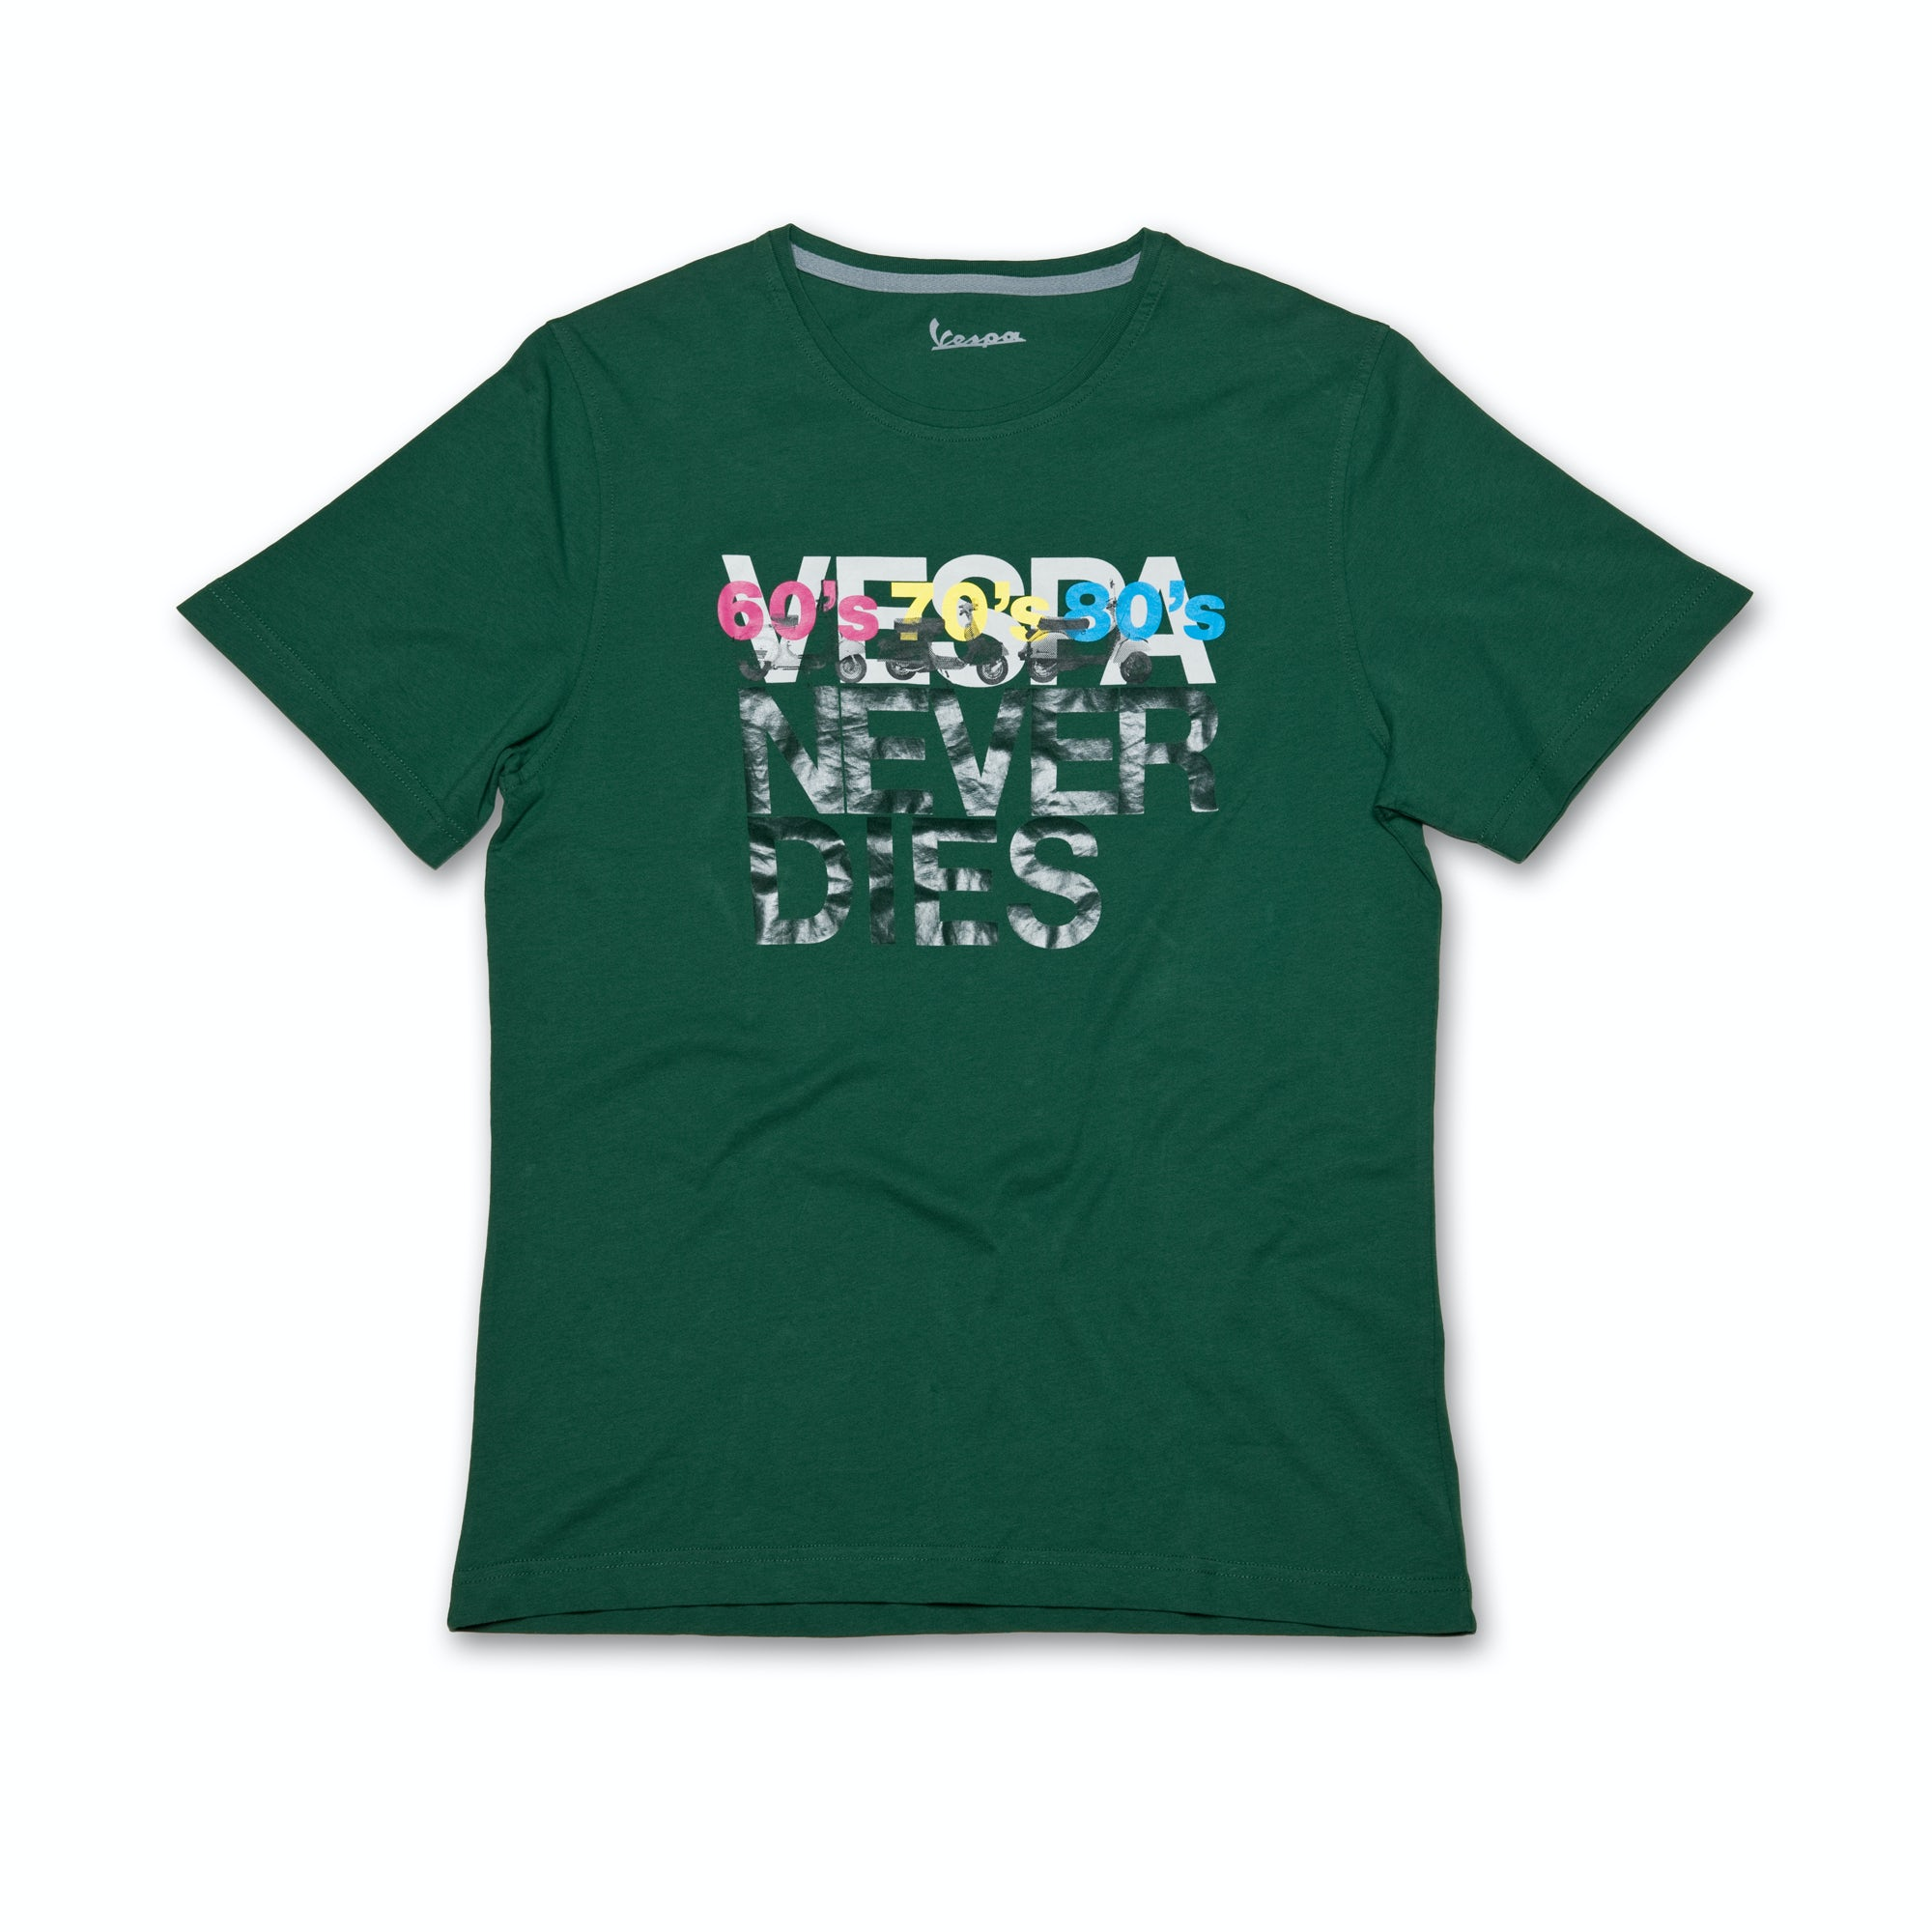 vespa years t shirt t shirts clothing. Black Bedroom Furniture Sets. Home Design Ideas